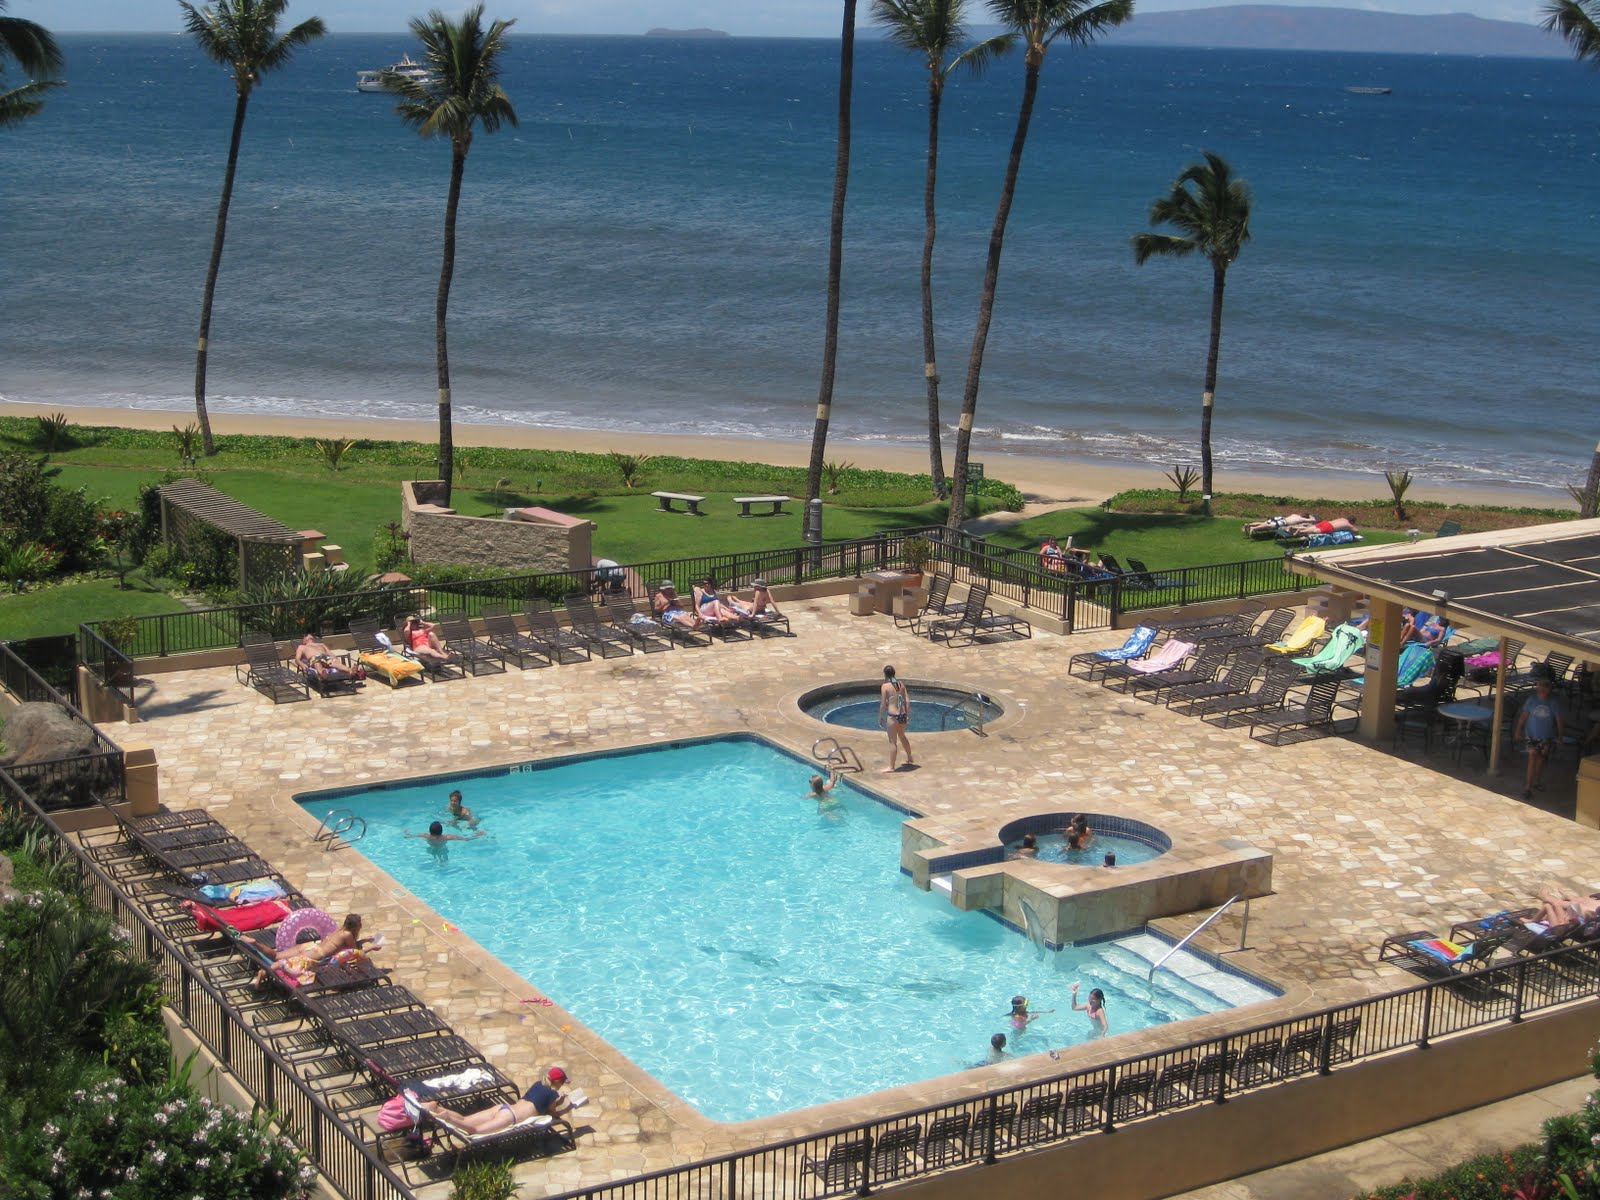 Vacation In The Beautiful Blue Pacific Maui Sugar Beach Resort